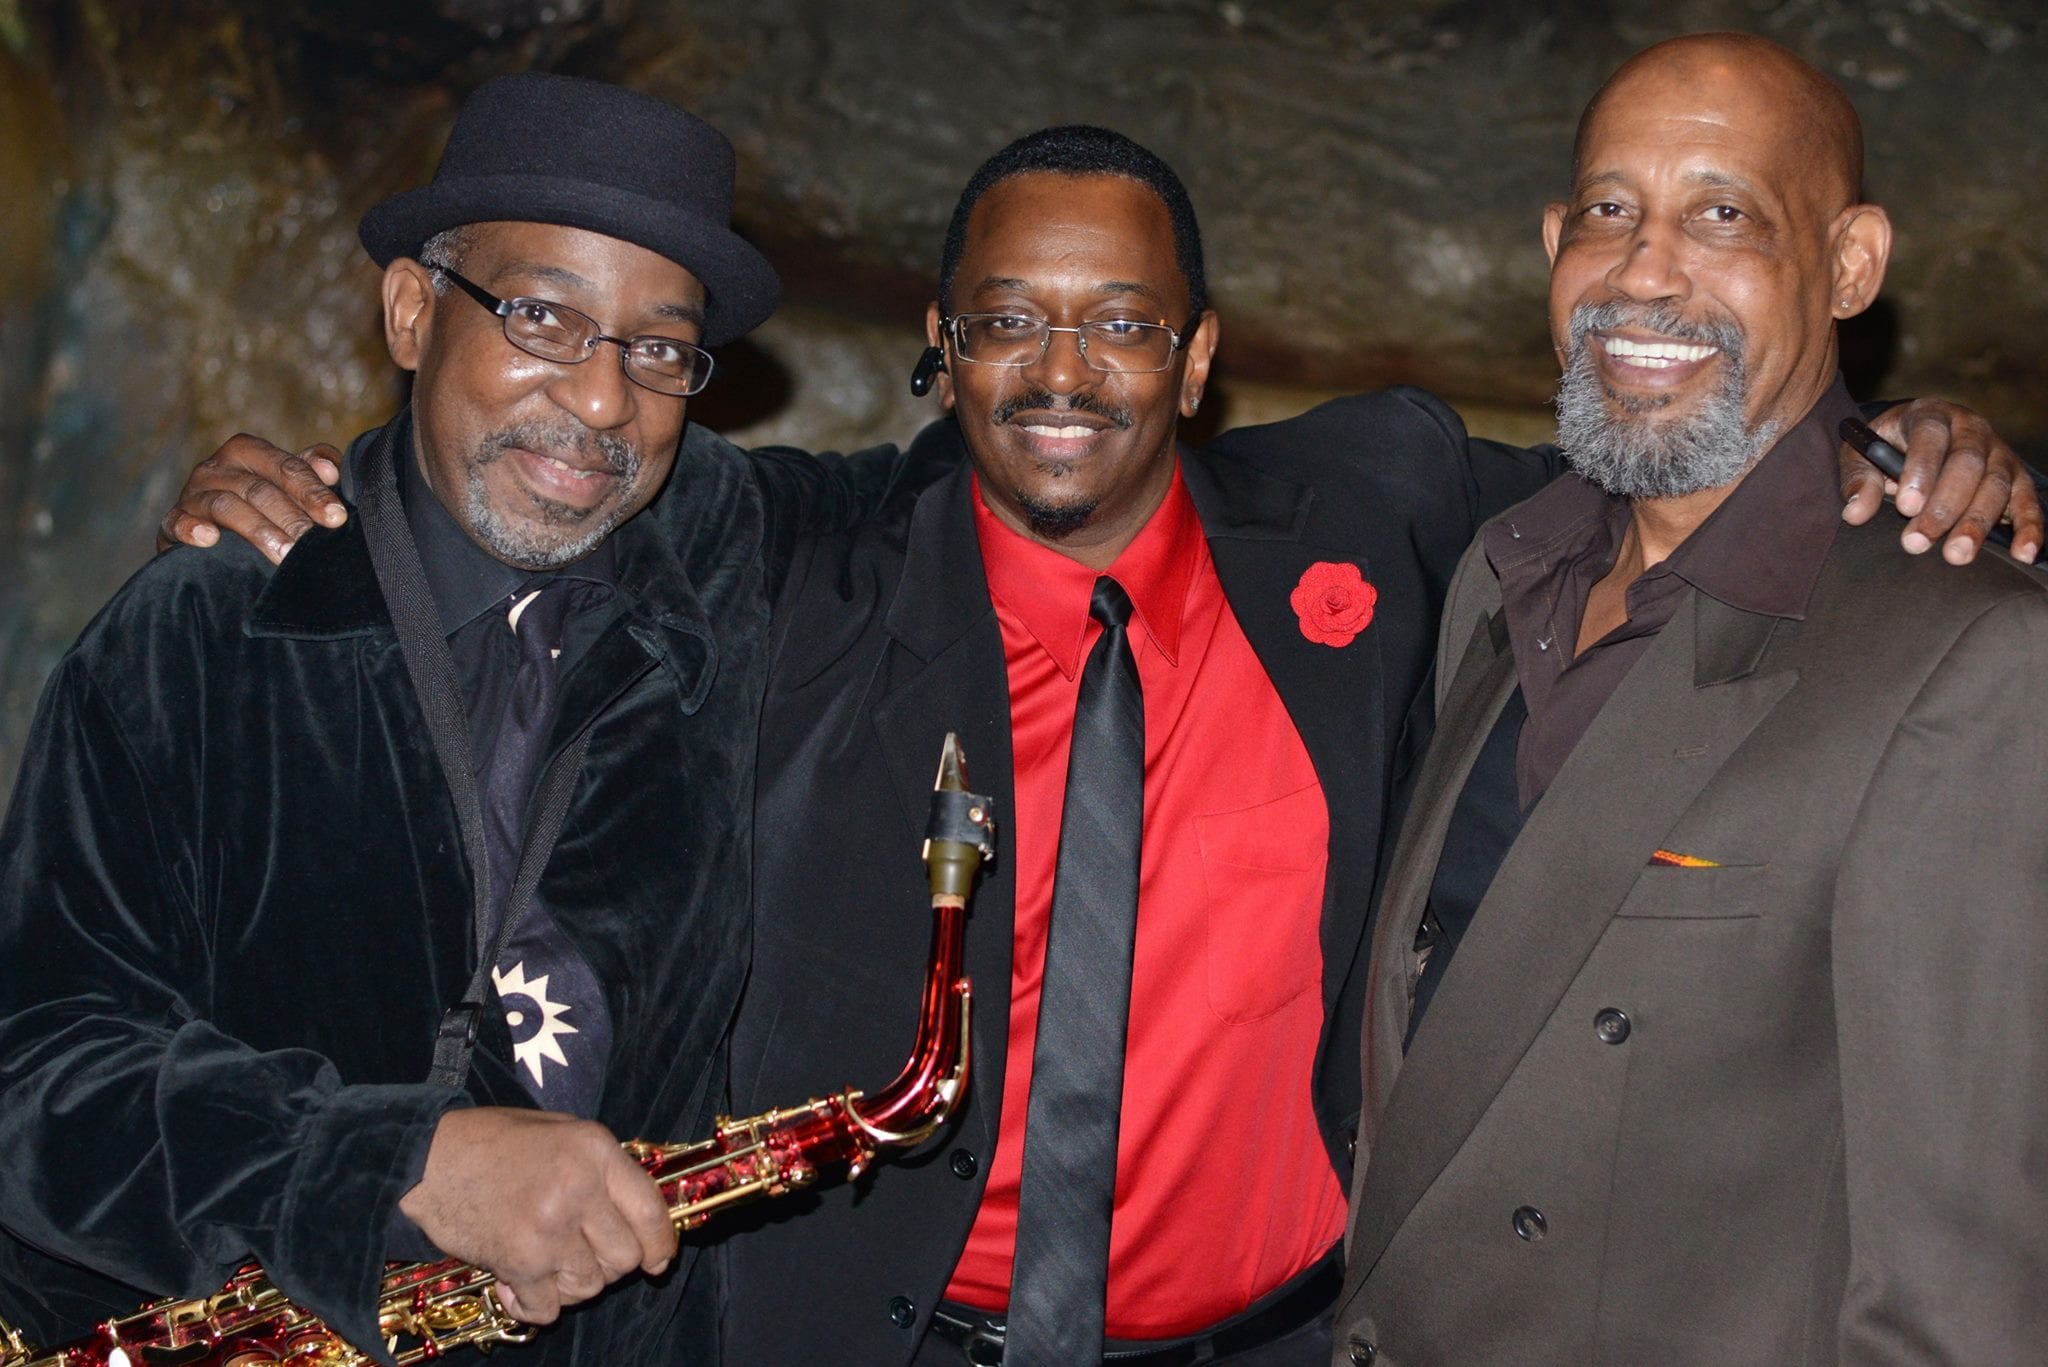 Ron Sutton, Frankie Addison and George V. Johnson at Bohemian Caverns in 2015. Courtesy Lawrence A Randall